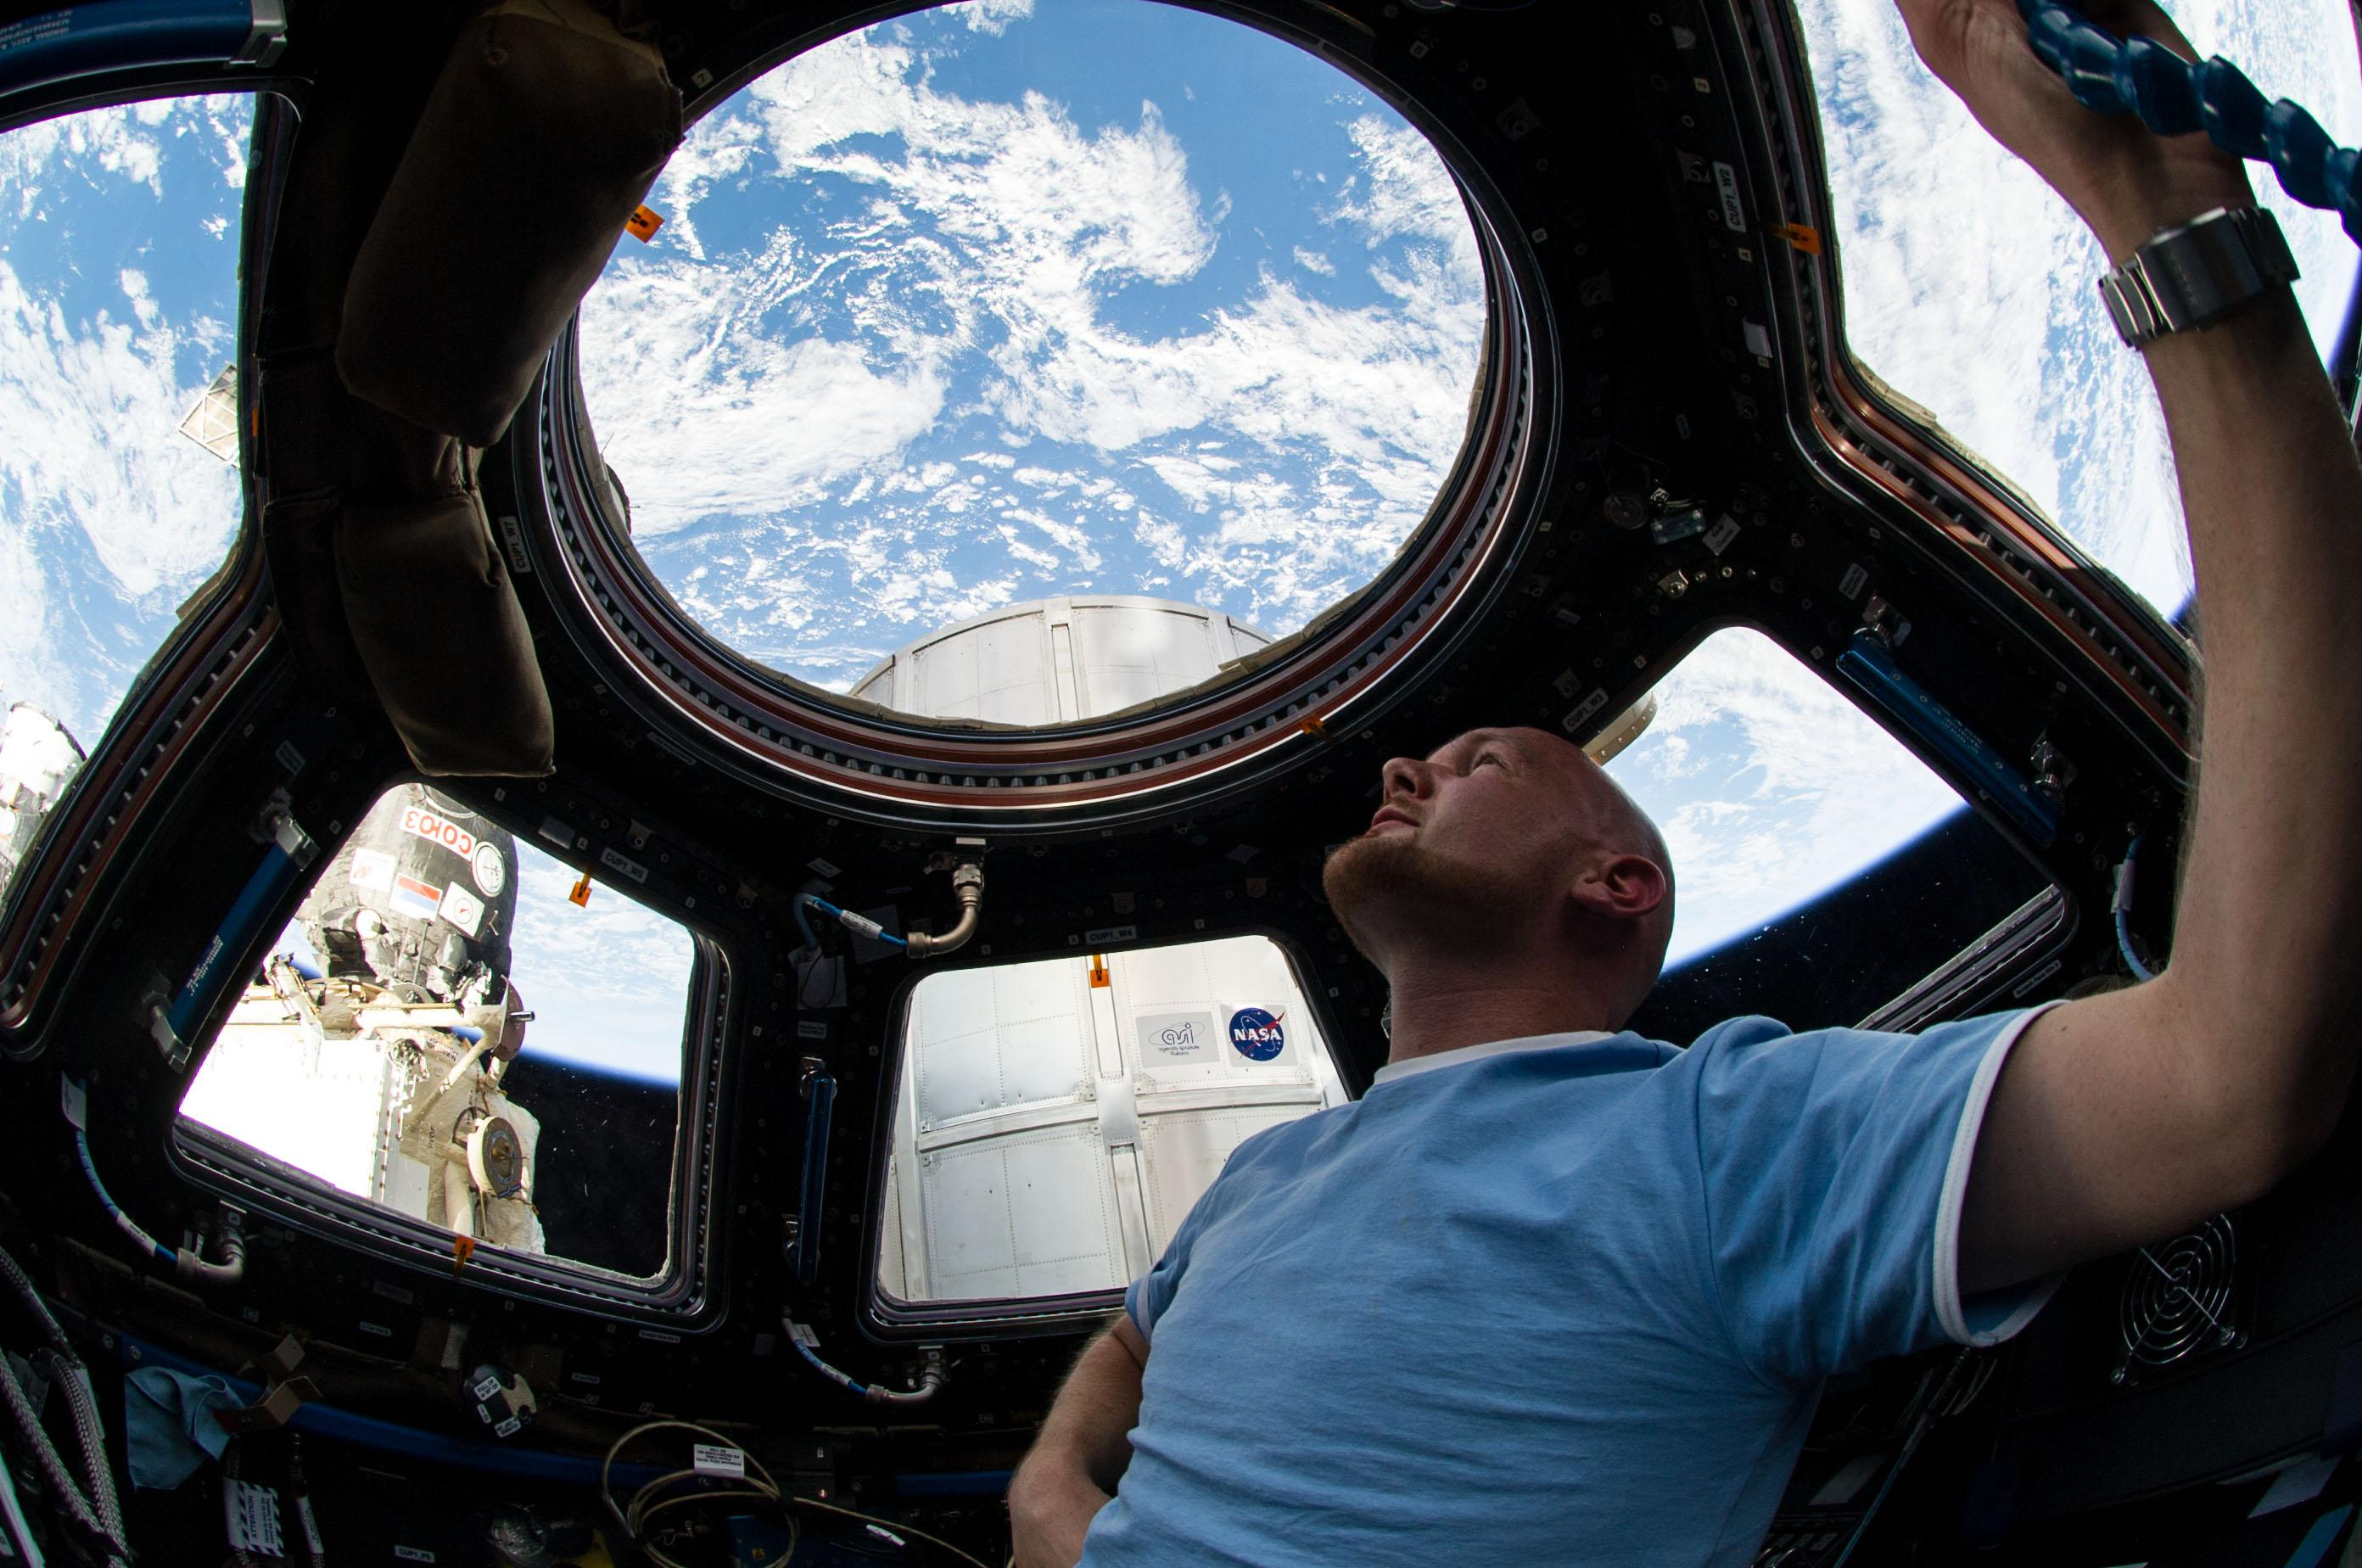 European Space Agency astronaut Alexander Gerst, Expedition 40 flight engineer, enjoys the view of Earth from the windows in the Cupola of the International Space Station. A blue and white part of Earth is visible through the windows.